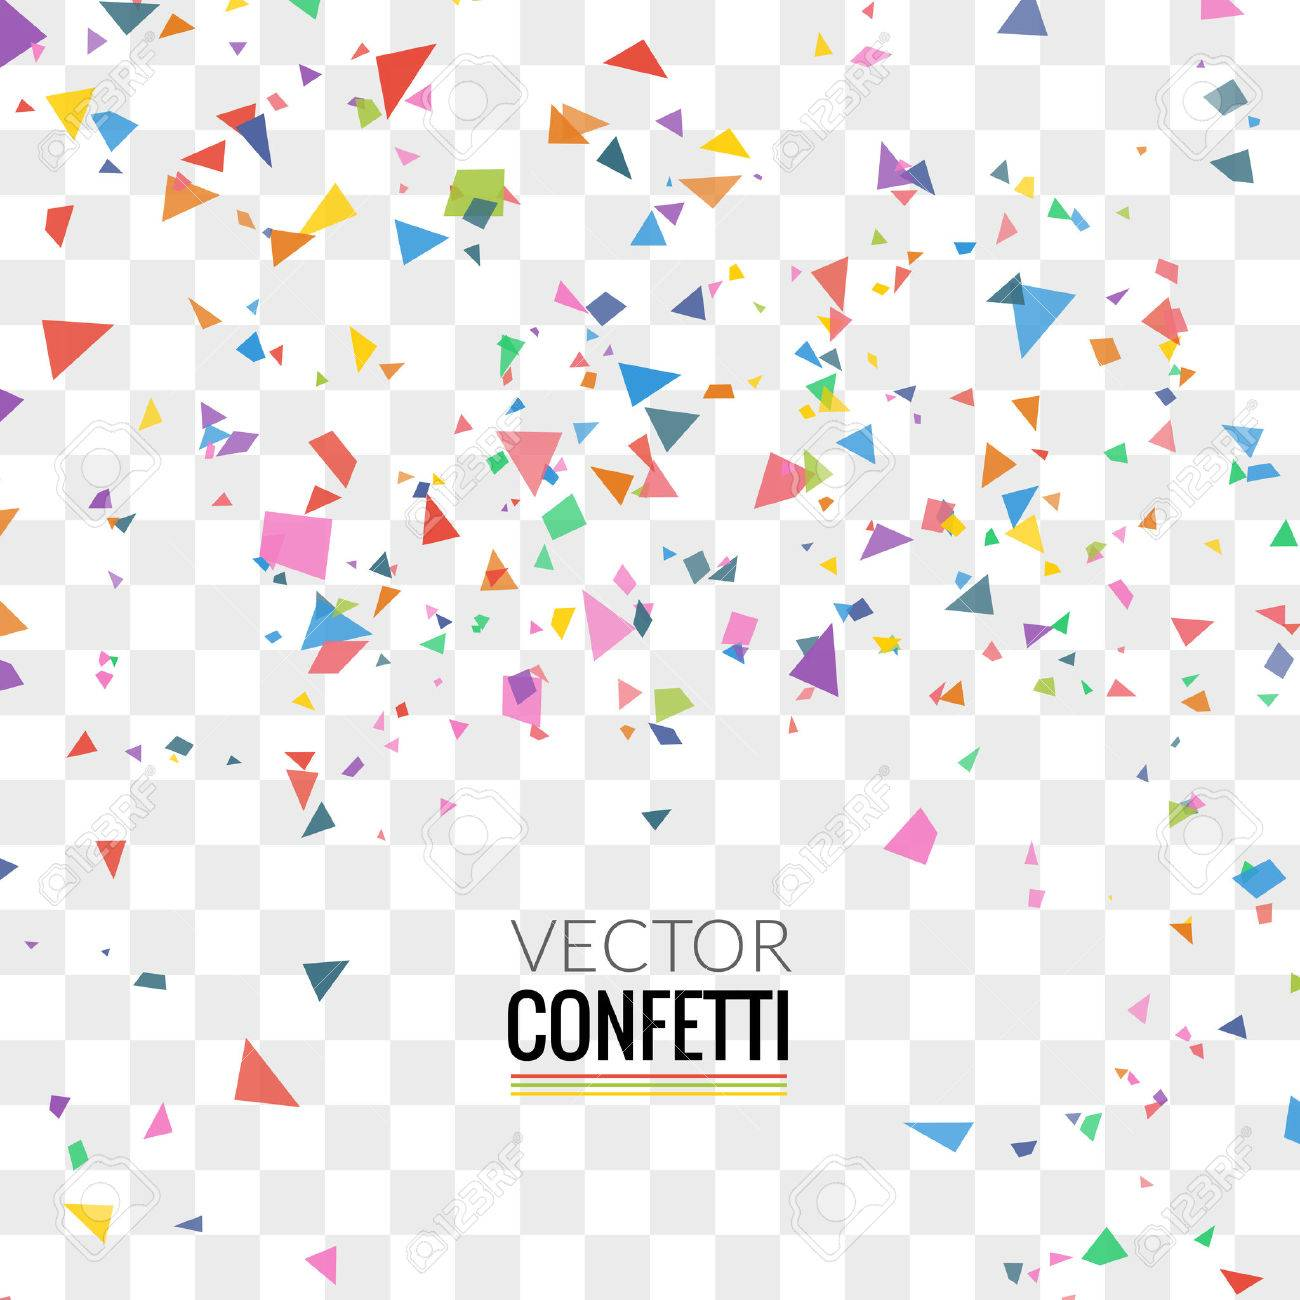 Colorful Confetti on Transparent square Background. Christmas, Birthday, Anniversary Party Concept. Vector Illustration. - 57946618